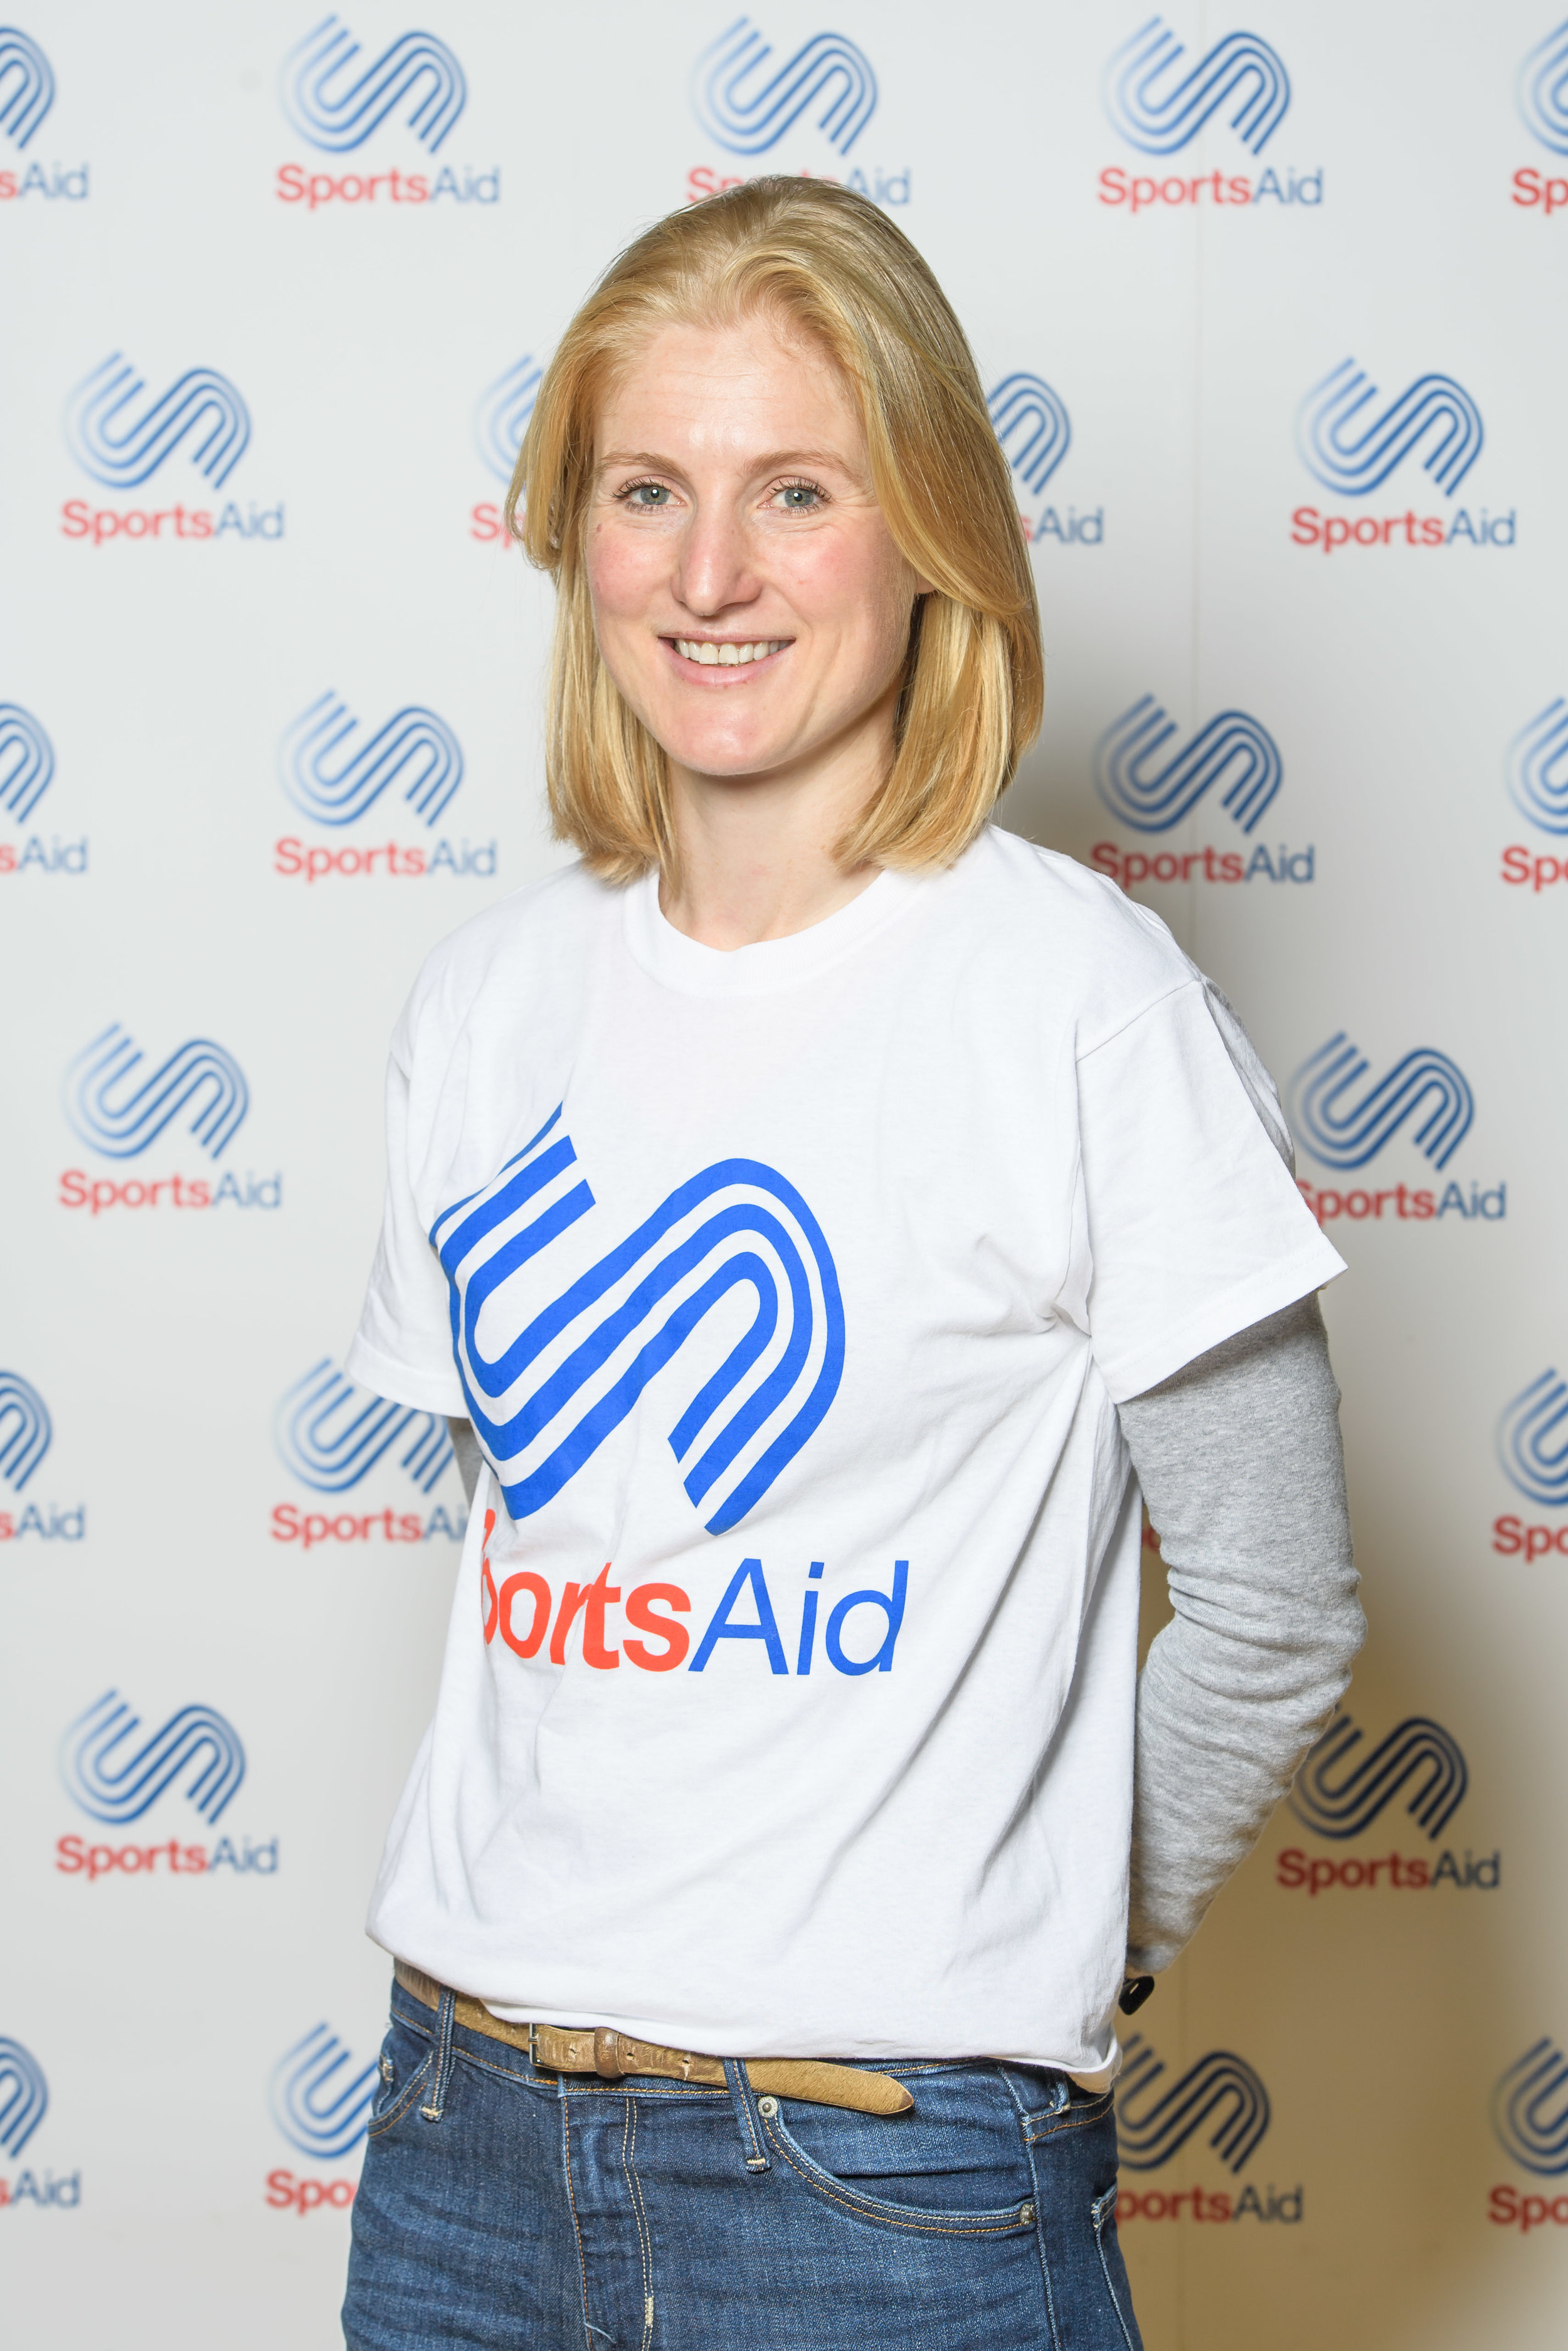 Proud to be an Ambassador for SportsAid who do fantastic work supporting our next generation of sporting superstars.